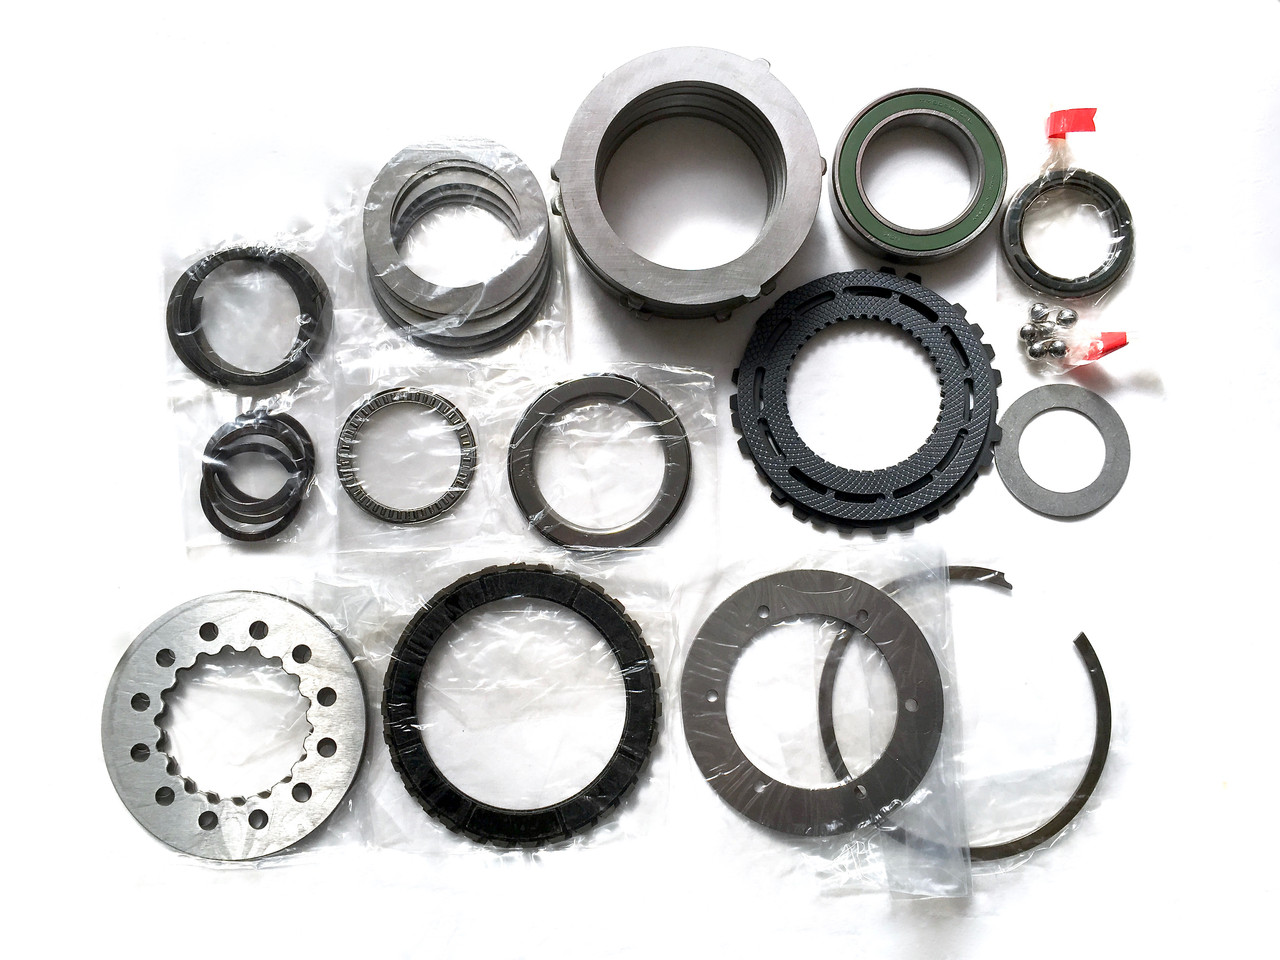 DCCD Overhaul Kit 390004S020 at AVOJDM.com